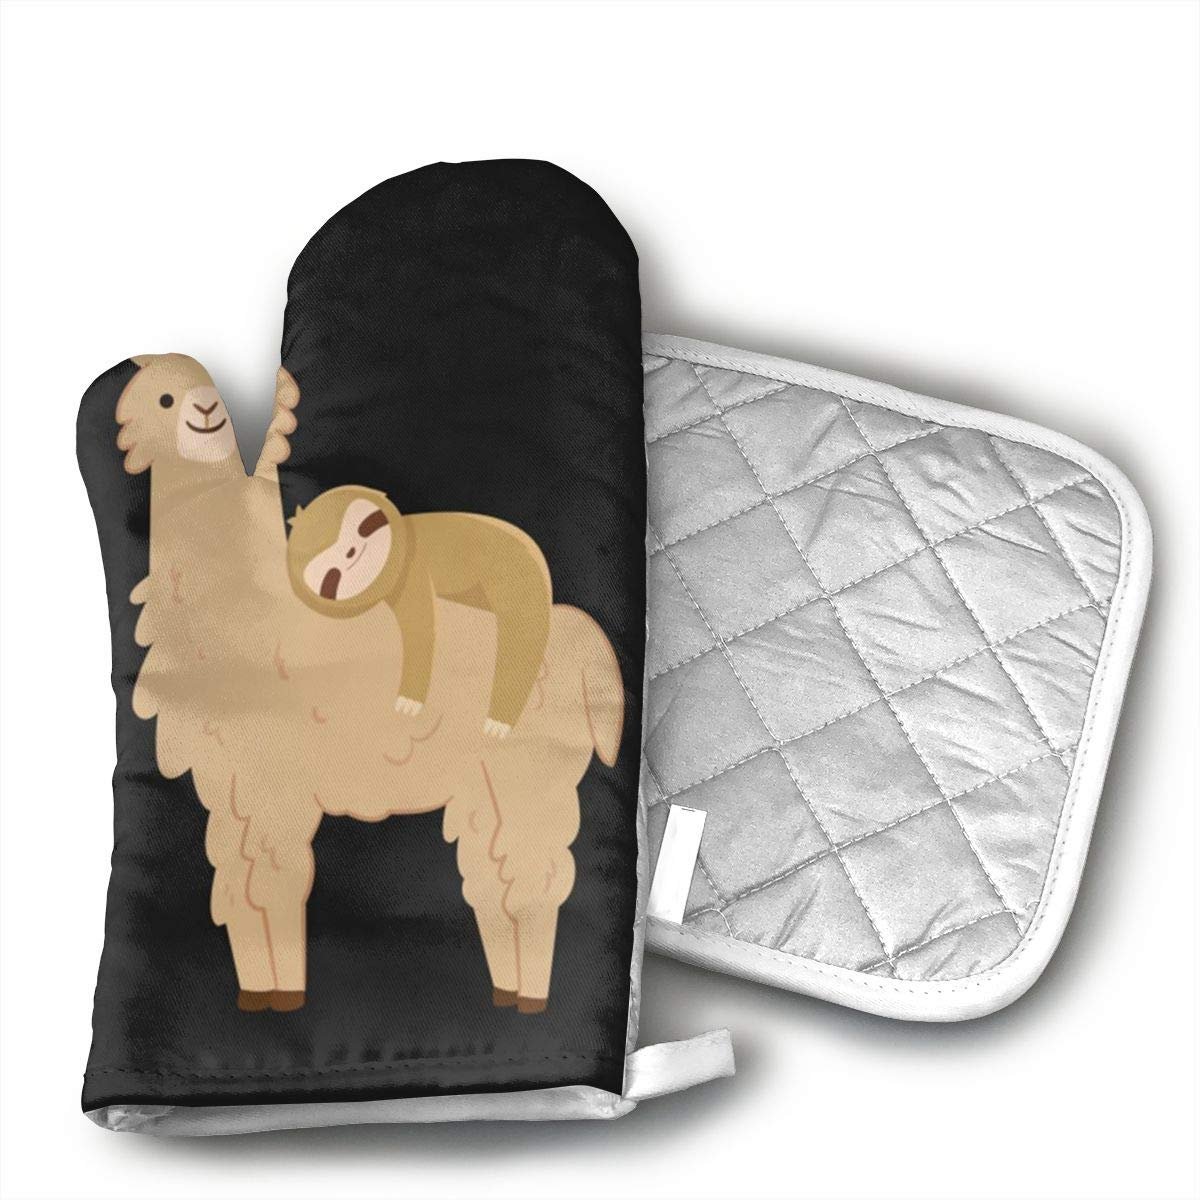 Teuwia Sloth Laying On A Llama Oven Mitts and Pot Holders Baking Oven Gloves Hot Pads Set Heat Resistant for Finger Hand Wrist Protection